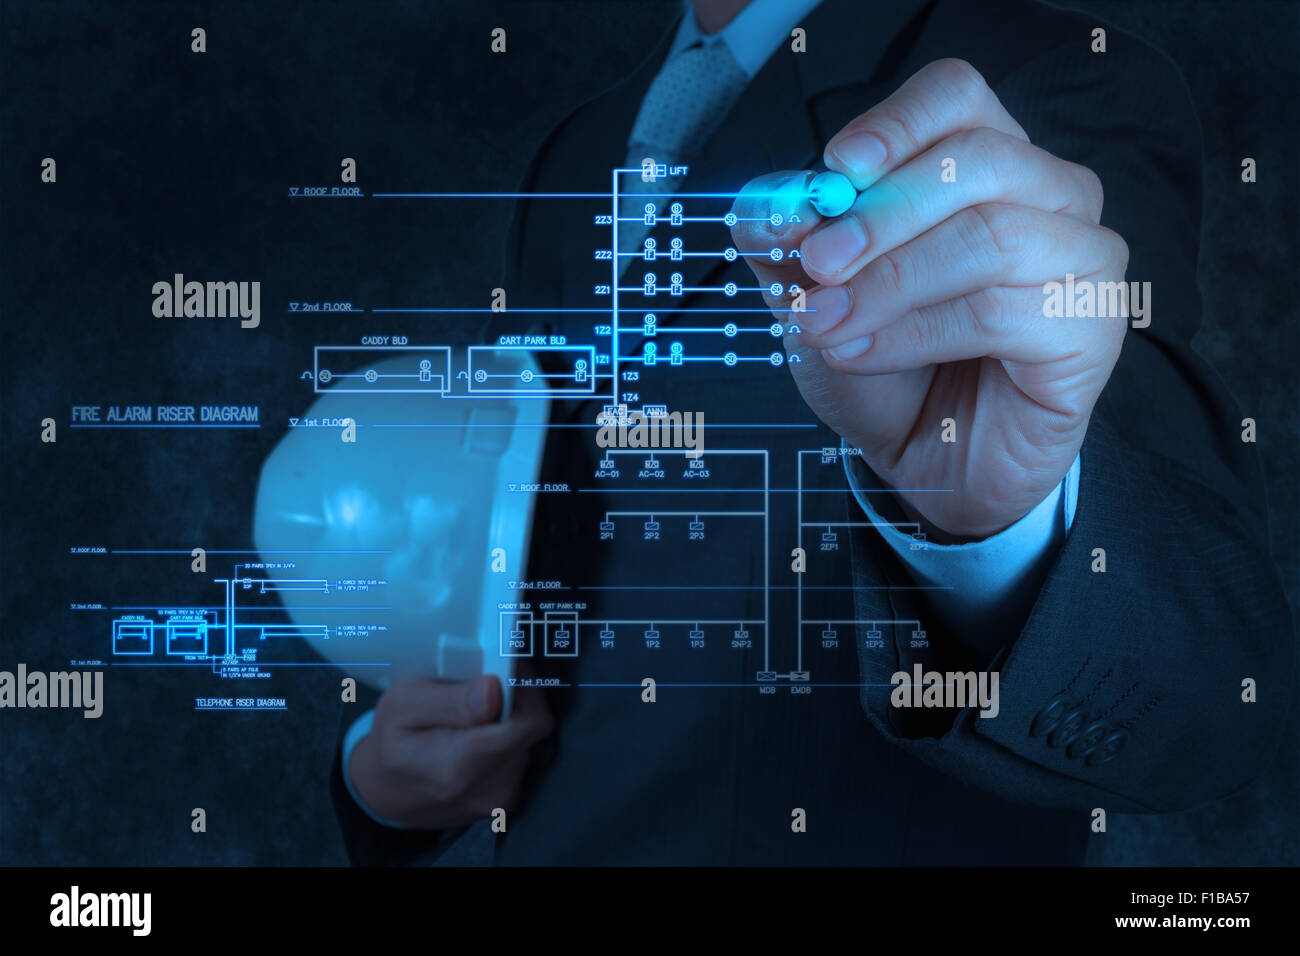 Fire Alarm Circuit Board Stock Photos & Fire Alarm Circuit Board ...